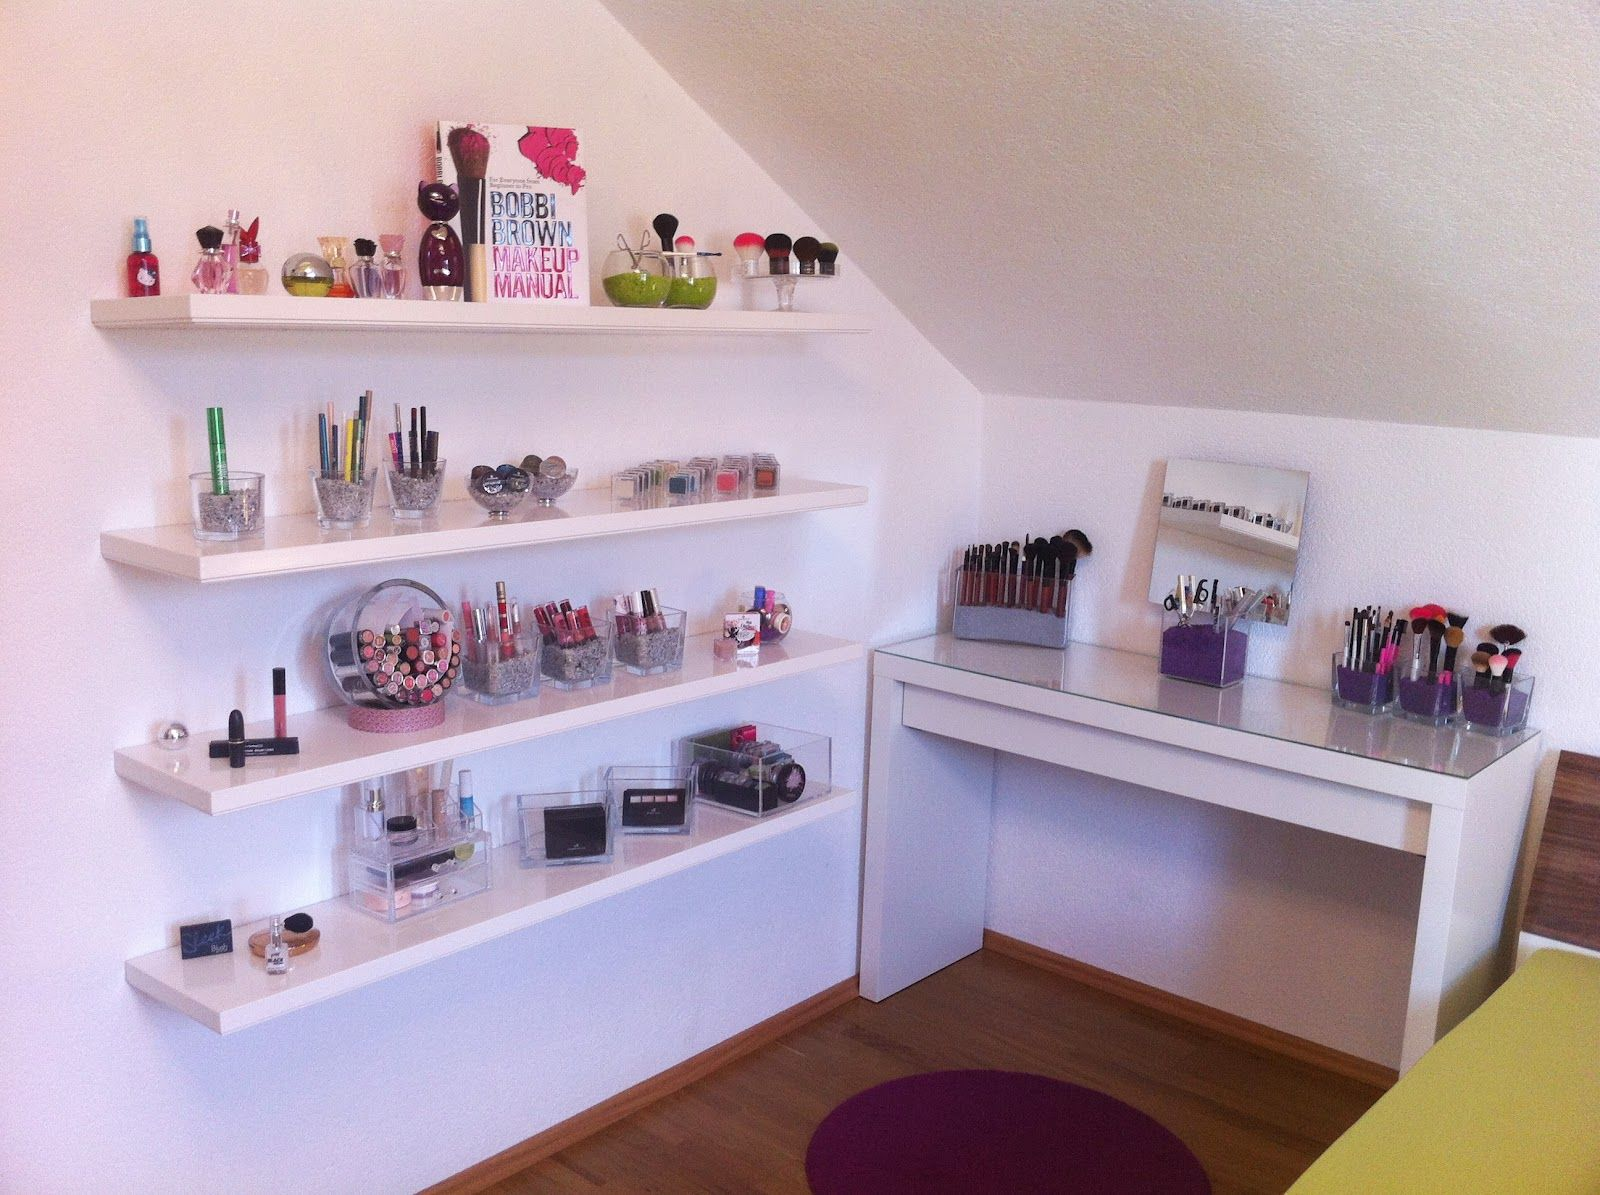 make up vanity that attaches to wall like a shelf